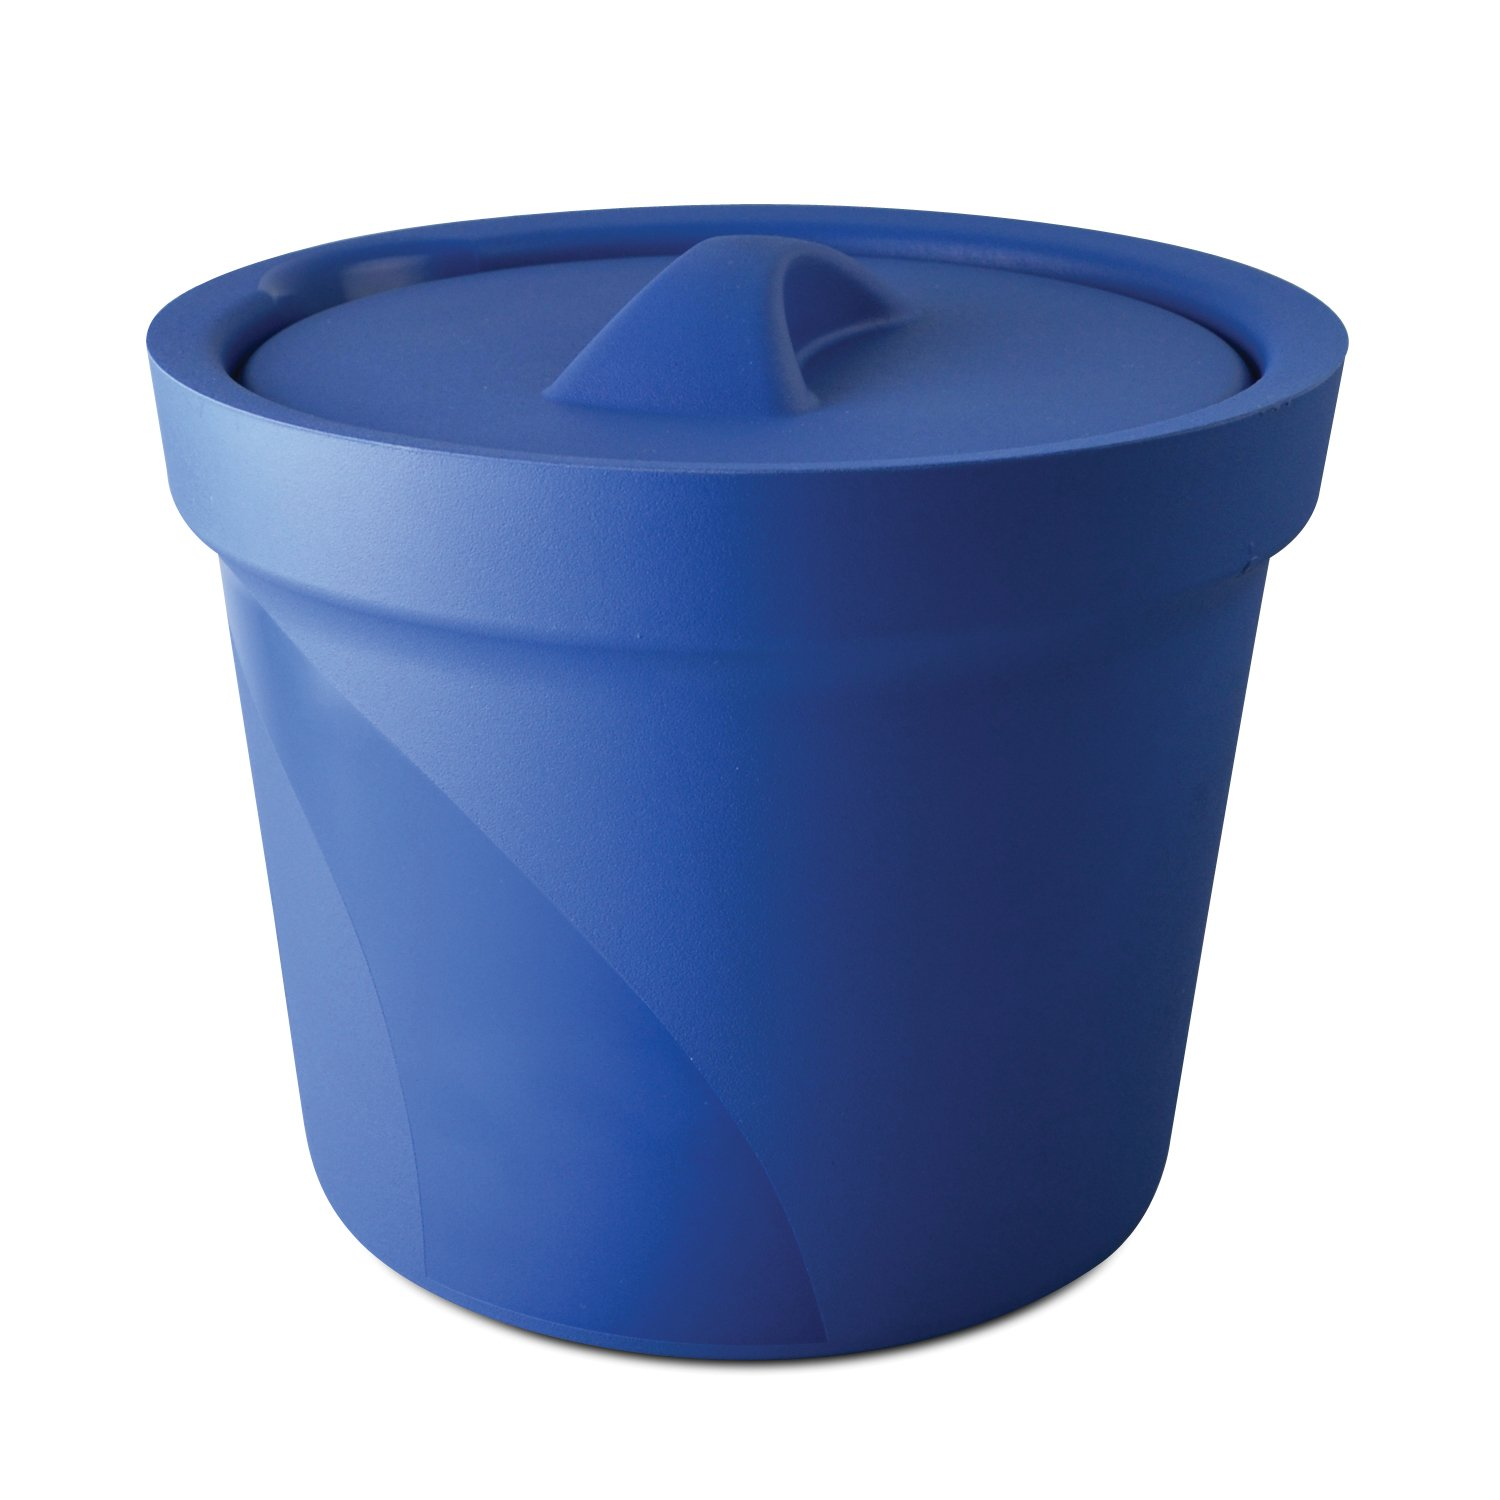 Bel-Art M16807-4001 Magic Touch 2 High Performance Blue Ice Bucket; 4.0 Liter, With Lid